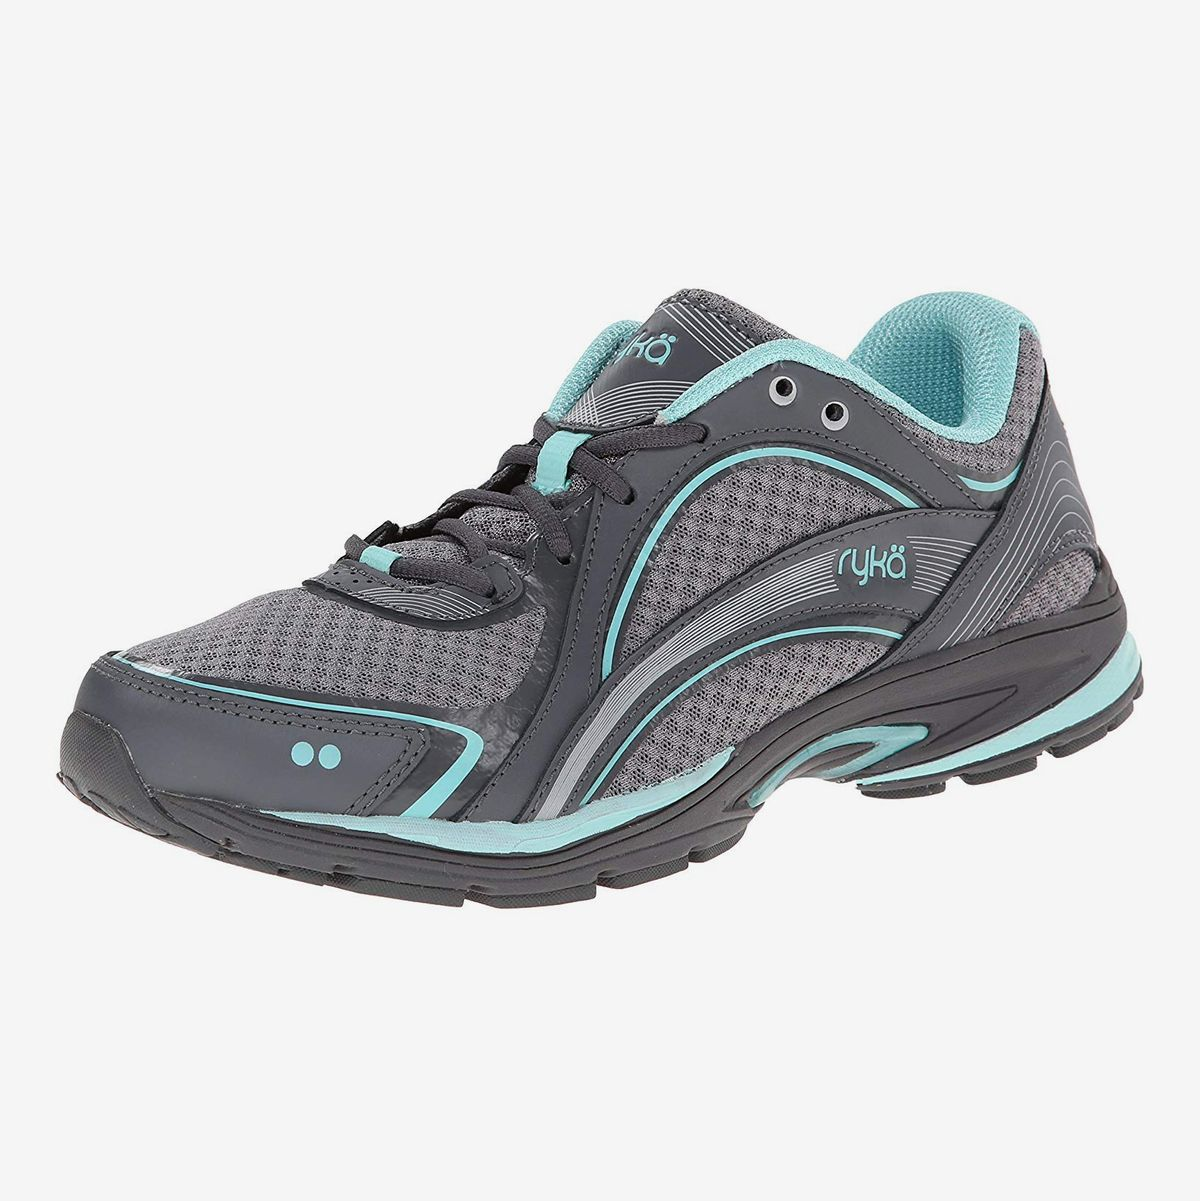 27 Best Walking Shoes for Men and Women